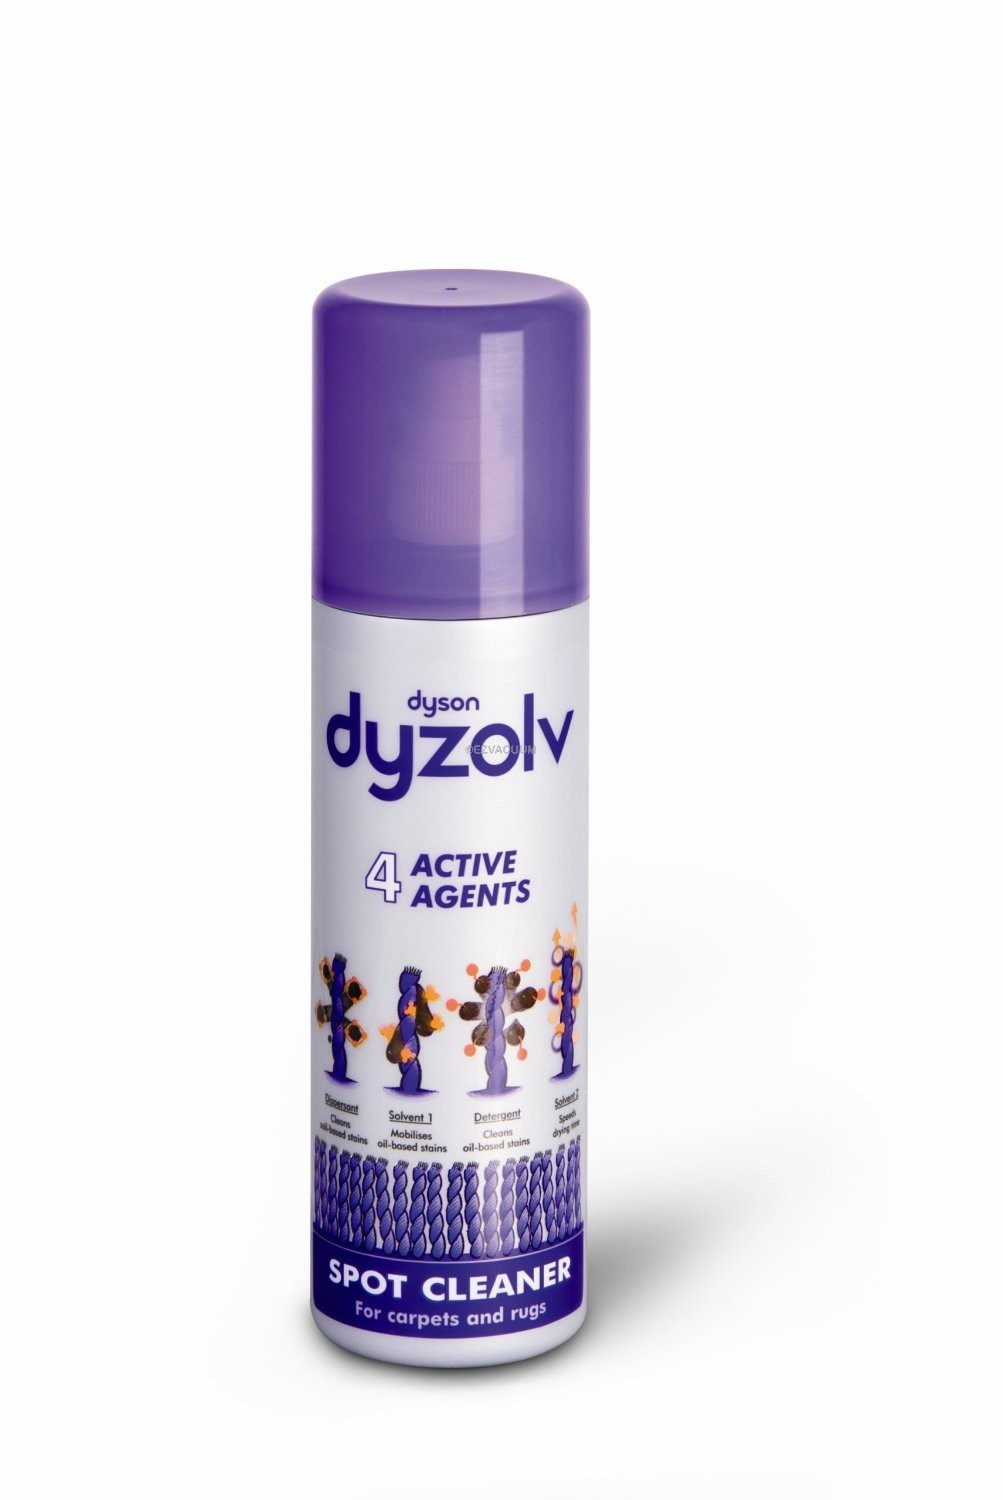 Genuine Dyson Dyzolv Stain And Stop Remover 8.5 OZ Spray